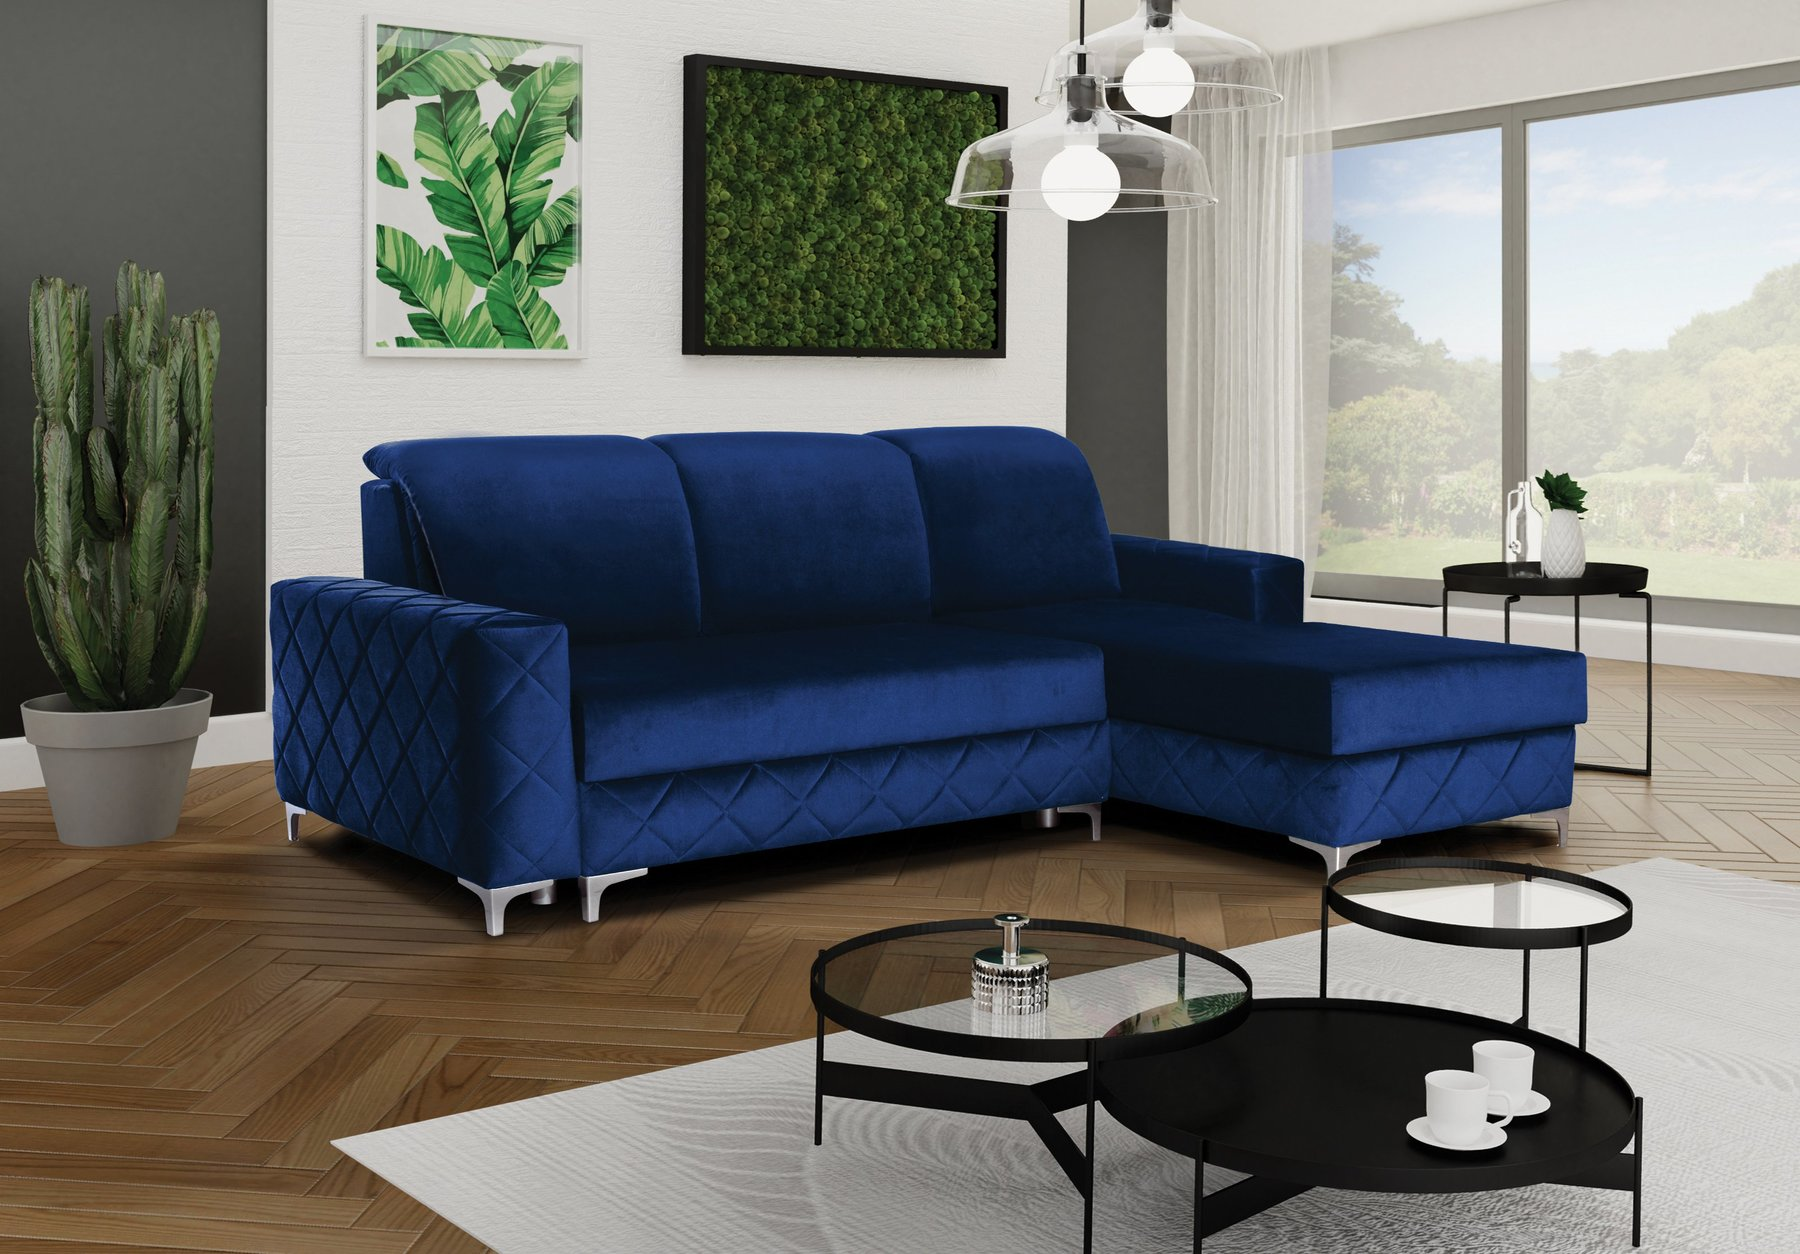 Alfredo Blue Sectional Sofa By Skyler Designs